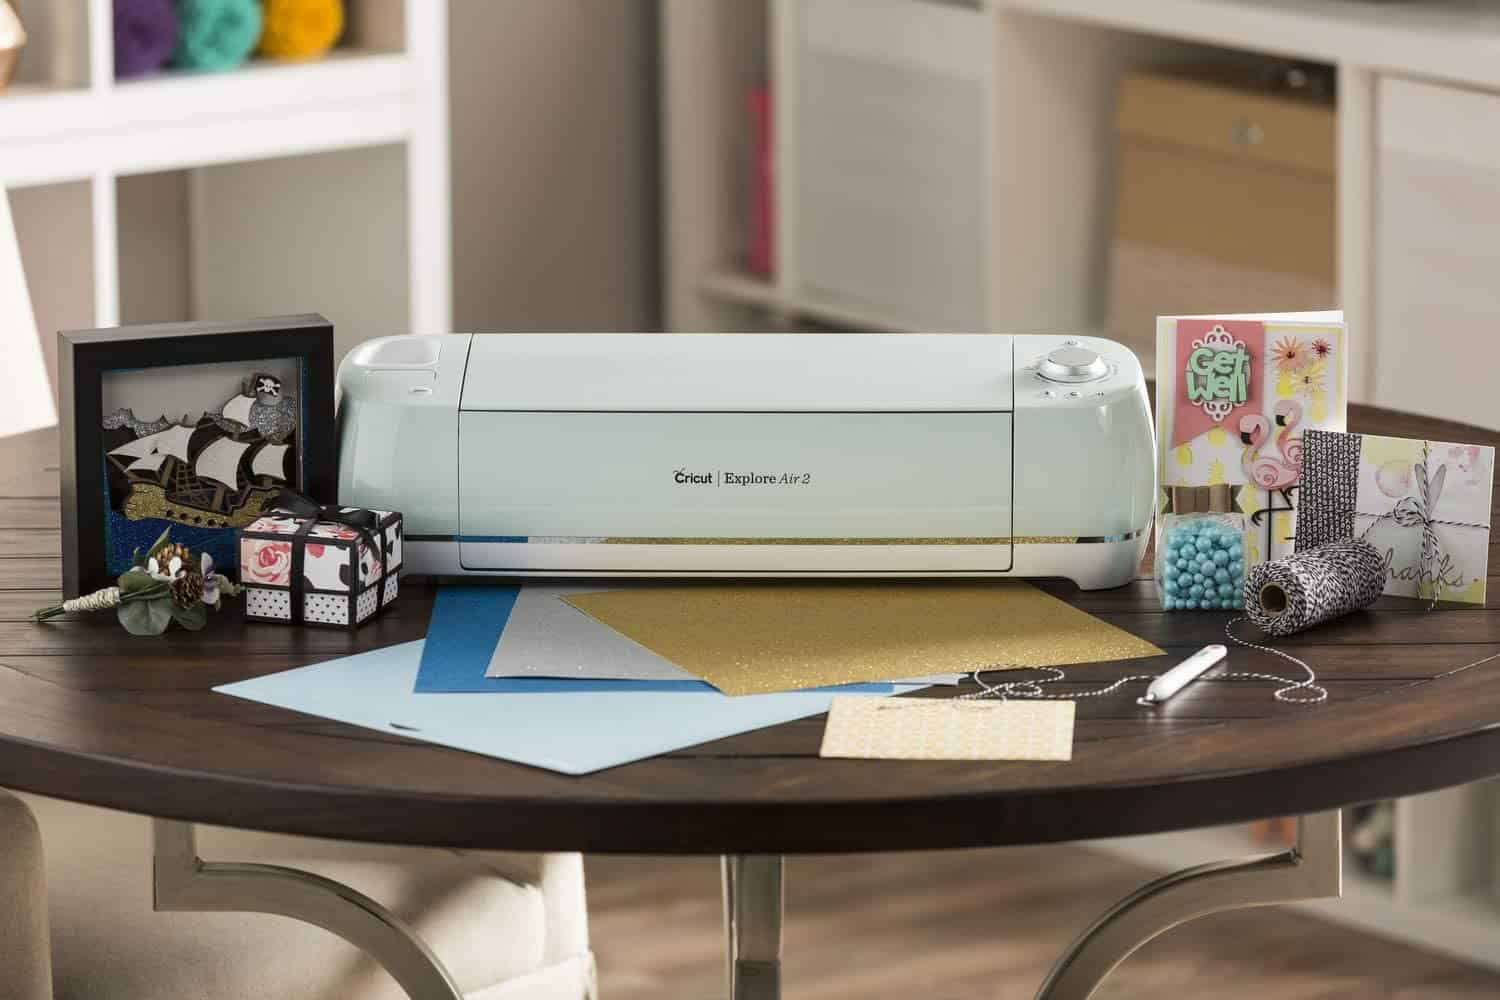 Cricut Explore Air on a crafting table surrounded by supplies.